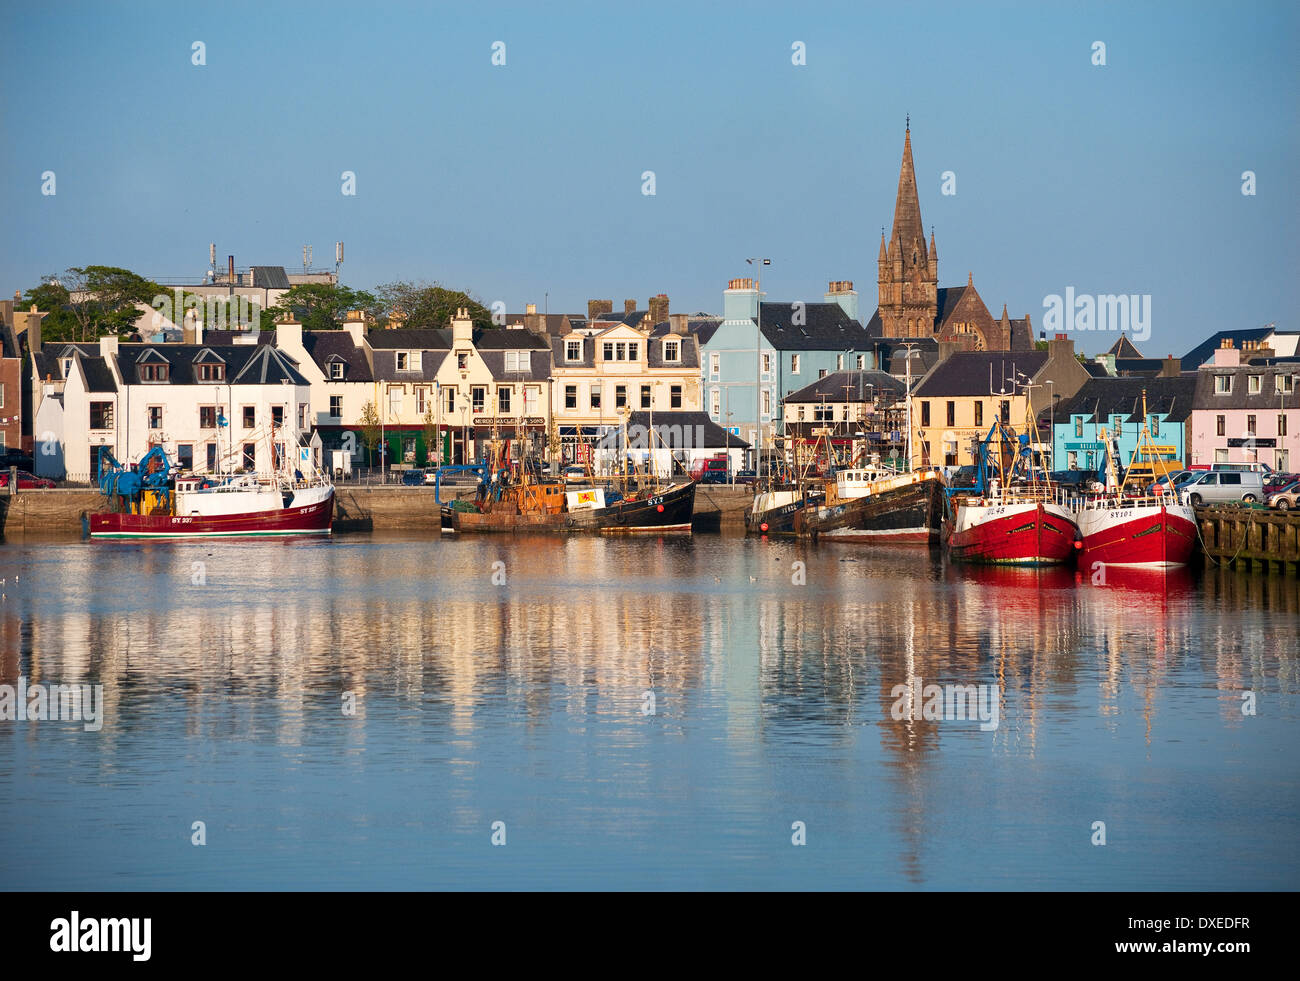 Stornoway harbour, Isle of Lewis, Outer Hebrides - Stock Image